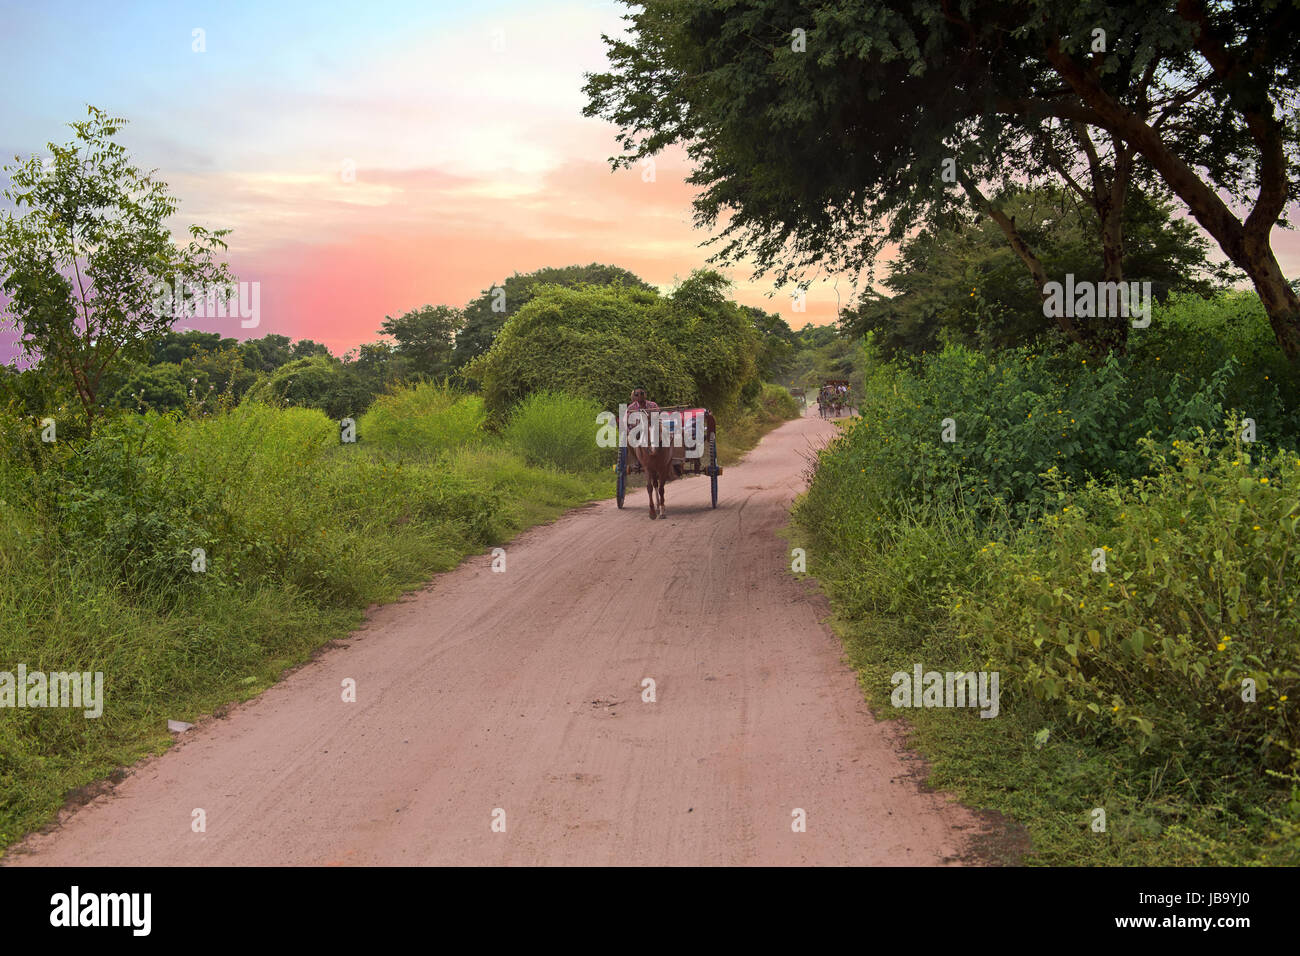 Riding horse cart on dusty road in Bagan, Myanmar at sunset - Stock Image